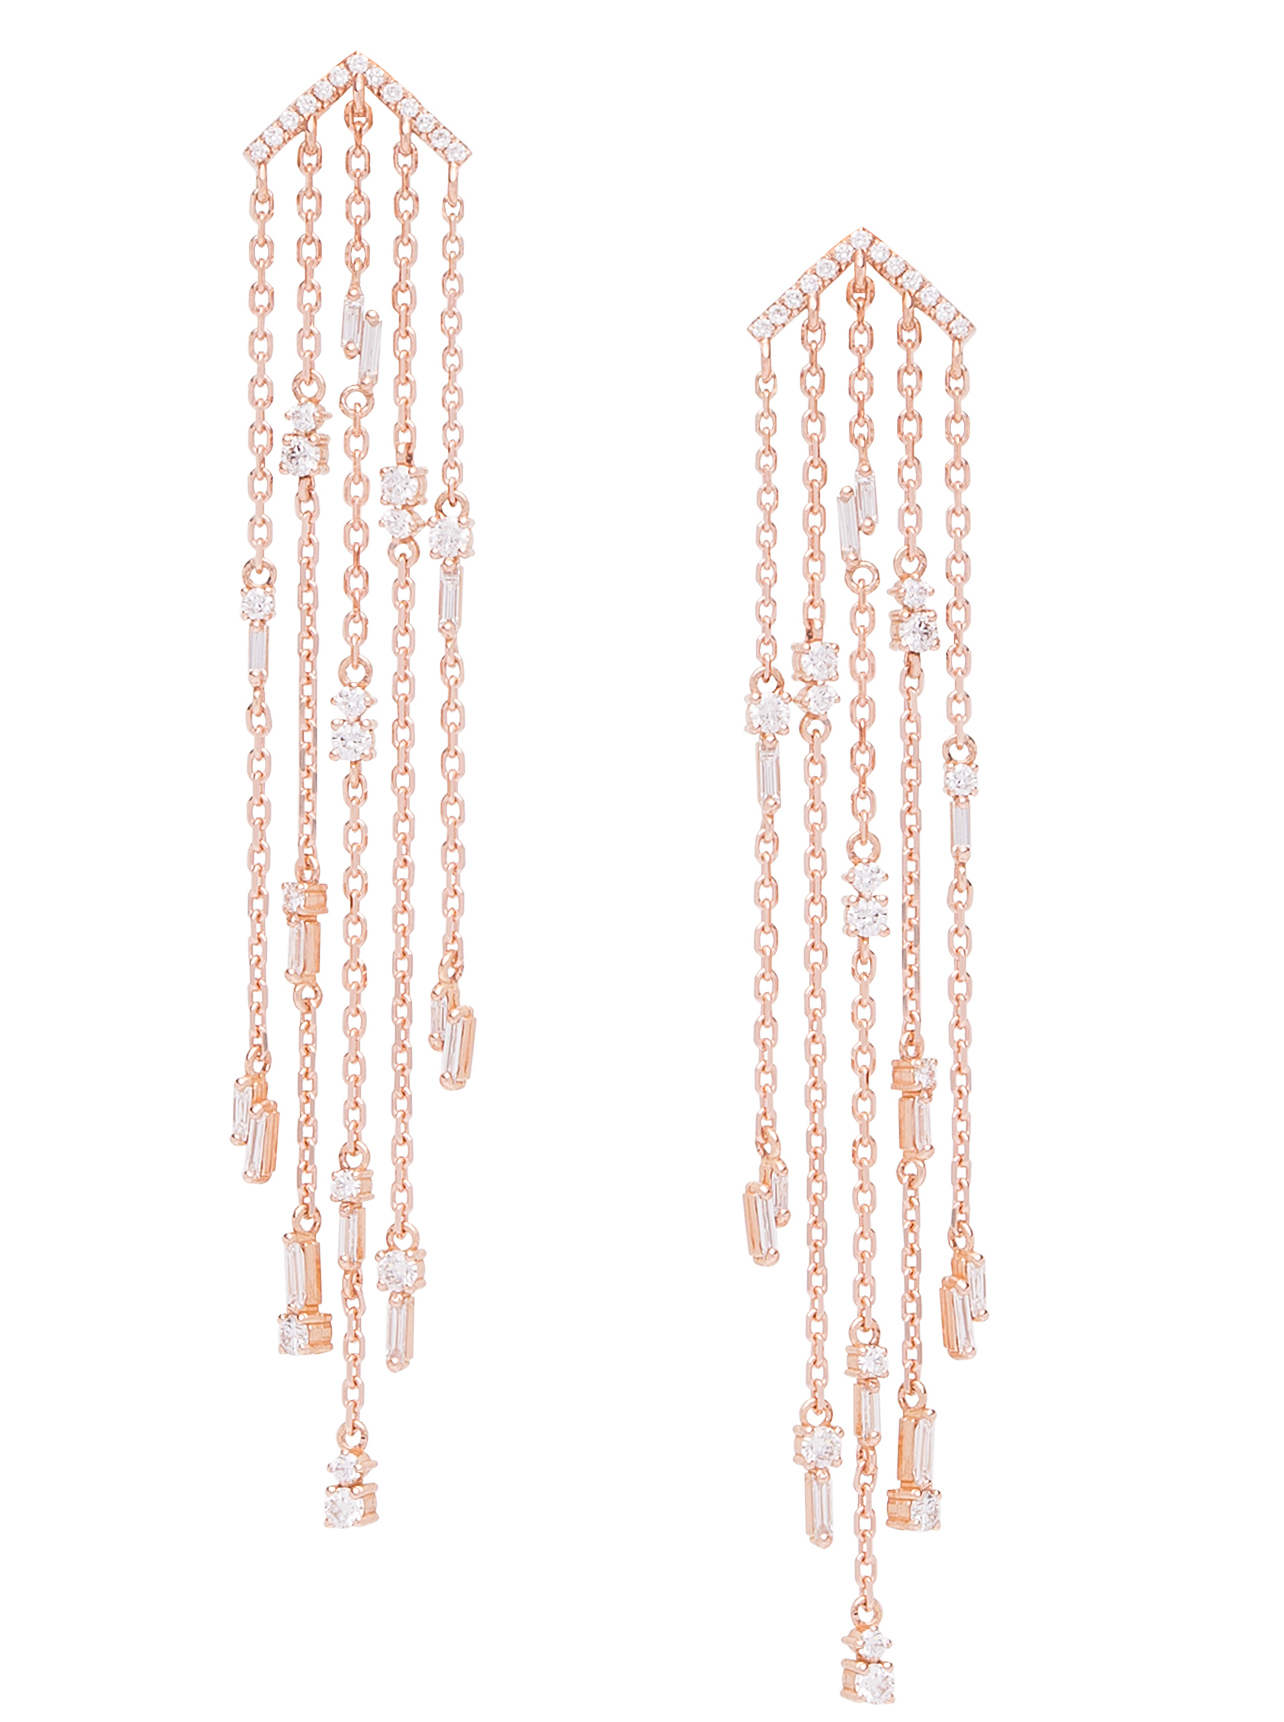 Suzanne Kalan Cascade Fireworks earrings | JCK On Your Market